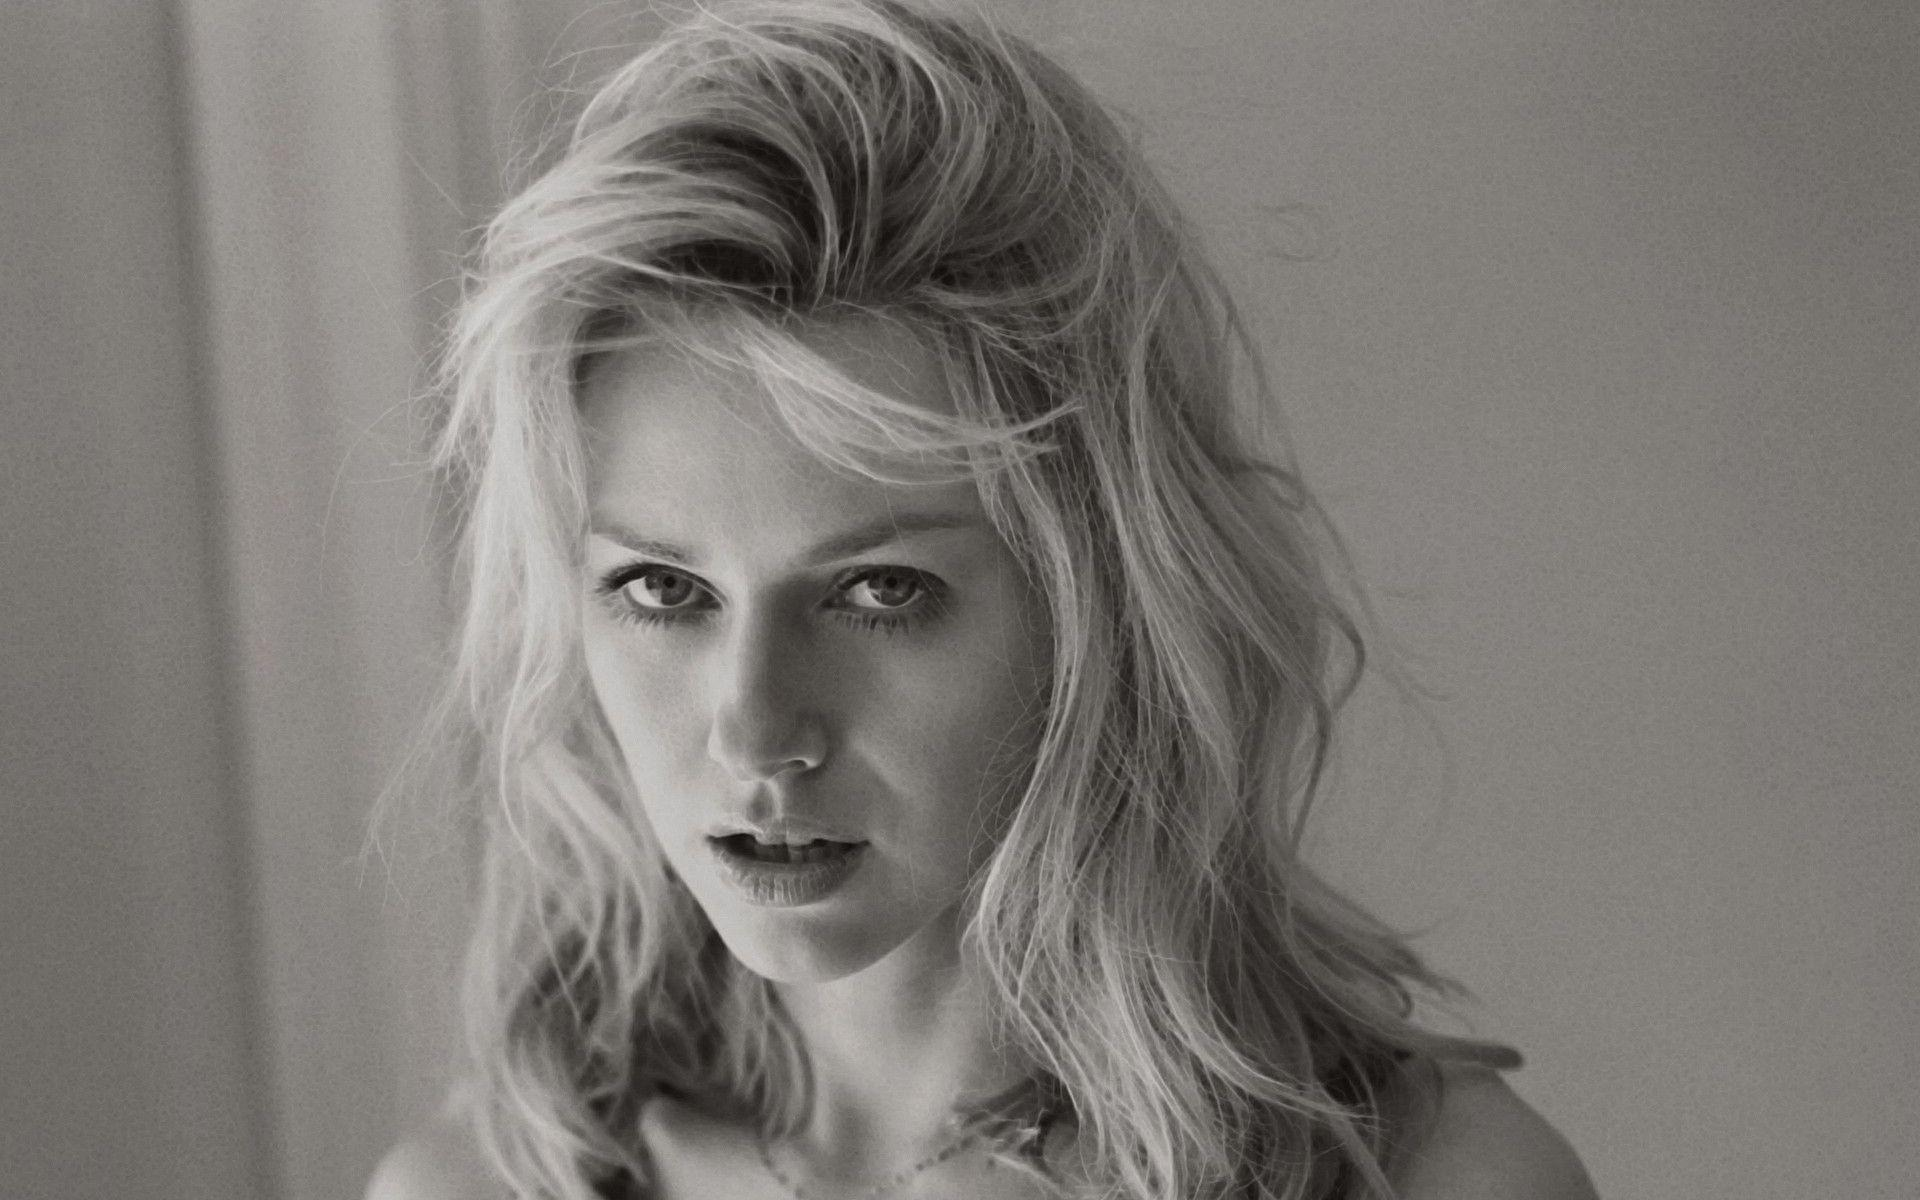 Naomi Watts - The Randomizer widescreen wallpapers for your desktop